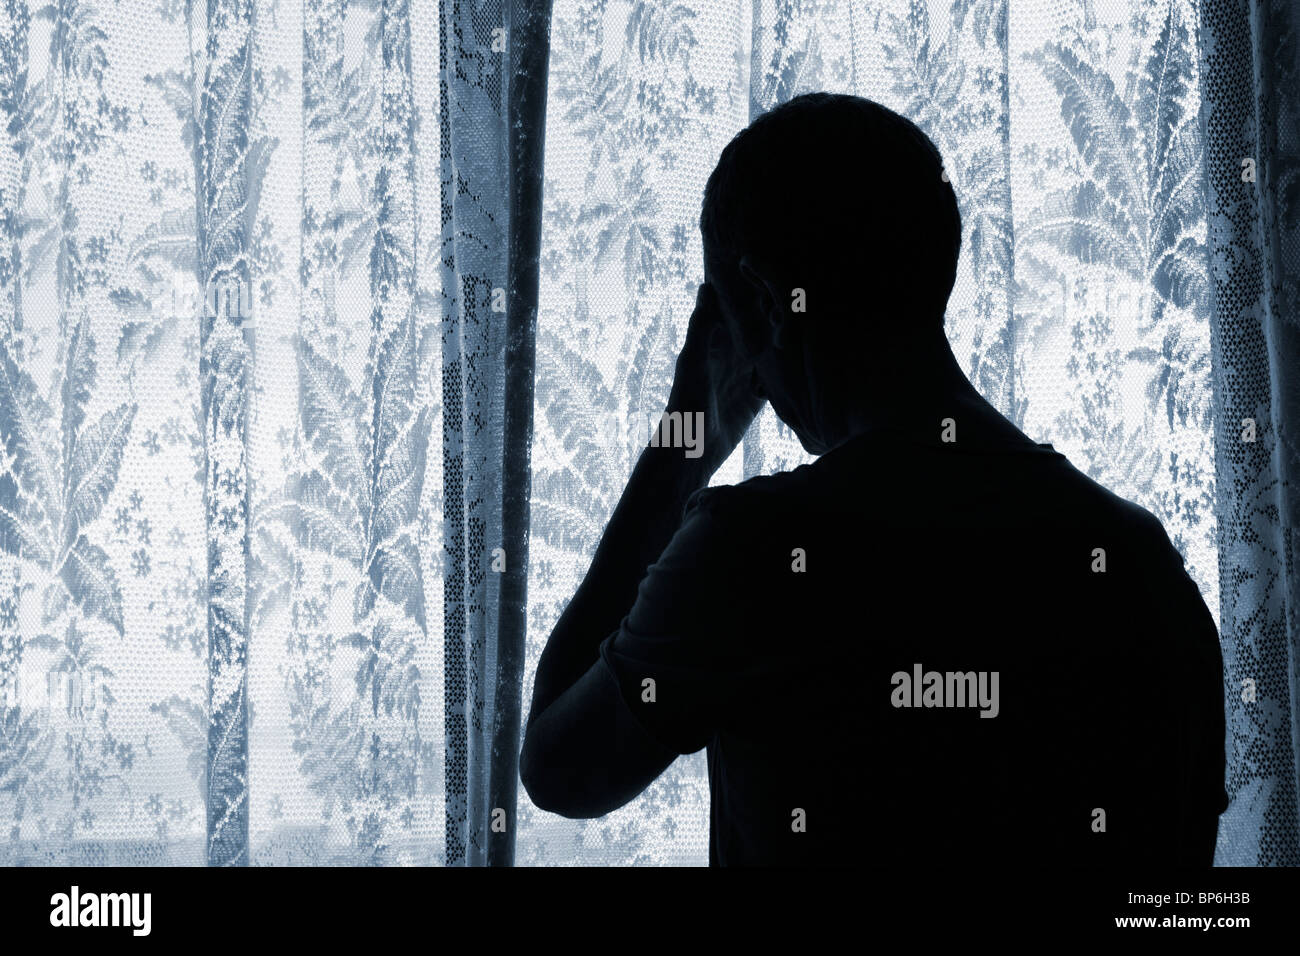 Man looking out of window through net curtains. Image could be used to portray depression, loneliness, agraphobia, - Stock Image